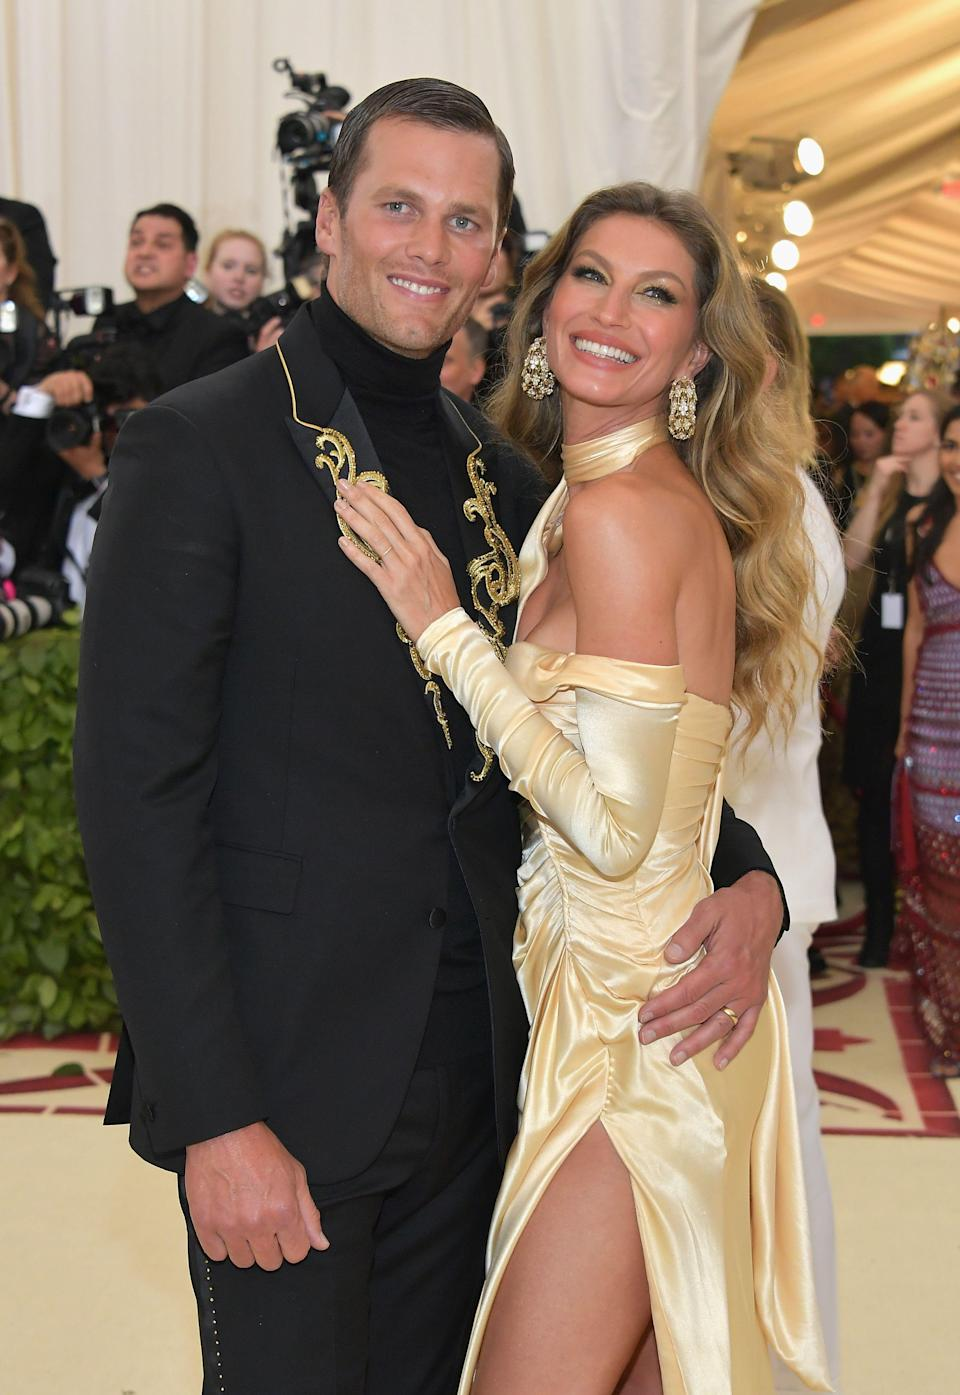 "<p>If you're thinking Gisele Bundchen and Tom Brady are one of those couples that have ah-mazing bodies, yet swear they eat like, burgers and crap? Yeah, no. Think again. The genetically gifted couple's former personal chef, <a href=""http://www.boston.com/sports/football/patriots/2016/01/04/meet-the-chef-who-decides-what-tom-brady-eats-and-what-definitely-doesn/gERAd0pkpmuELDZztIA56K/story.html"" rel=""nofollow noopener"" target=""_blank"" data-ylk=""slk:Allen Campbell, opened up about what the couple actually eats"" class=""link rapid-noclick-resp"">Allen Campbell, opened up about what the couple actually eats</a> in a day. And he's not sugar-coating anything—literally and figuratively. </p><p>Curious what it takes to get bodies that rocking? Check out the main staples making up the power couple's organic, 80 percent vegetable, 20 percent lean meat diet. But it might be what the duo <em>doesn't </em>eat that's most shocking.</p>"